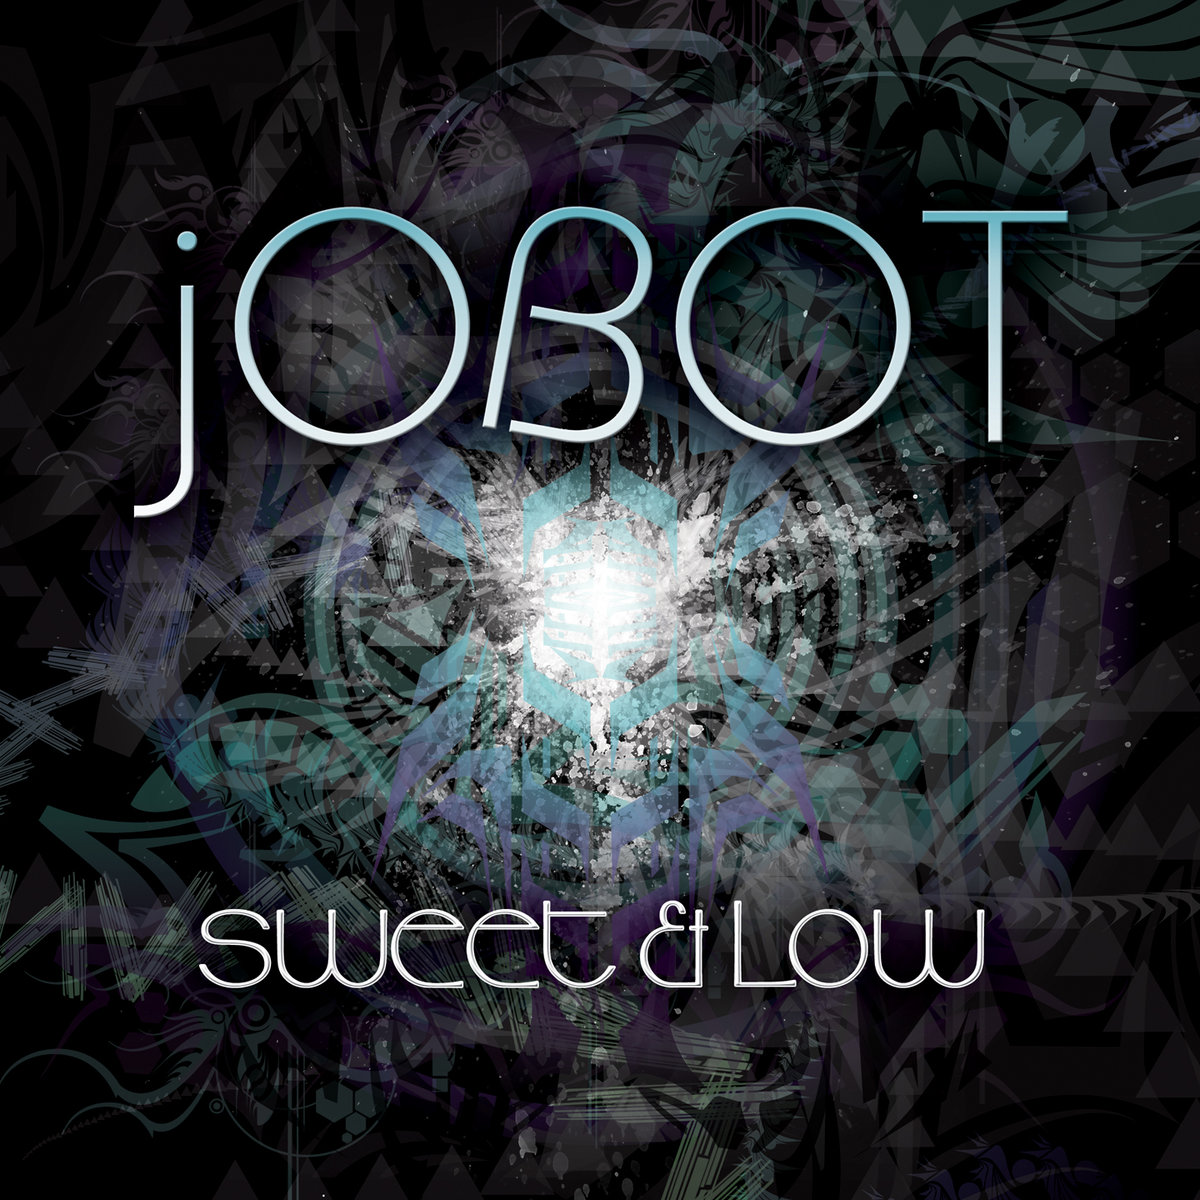 jOBOT - Noodoo @ 'Sweet & Low' album (bass, electronic)